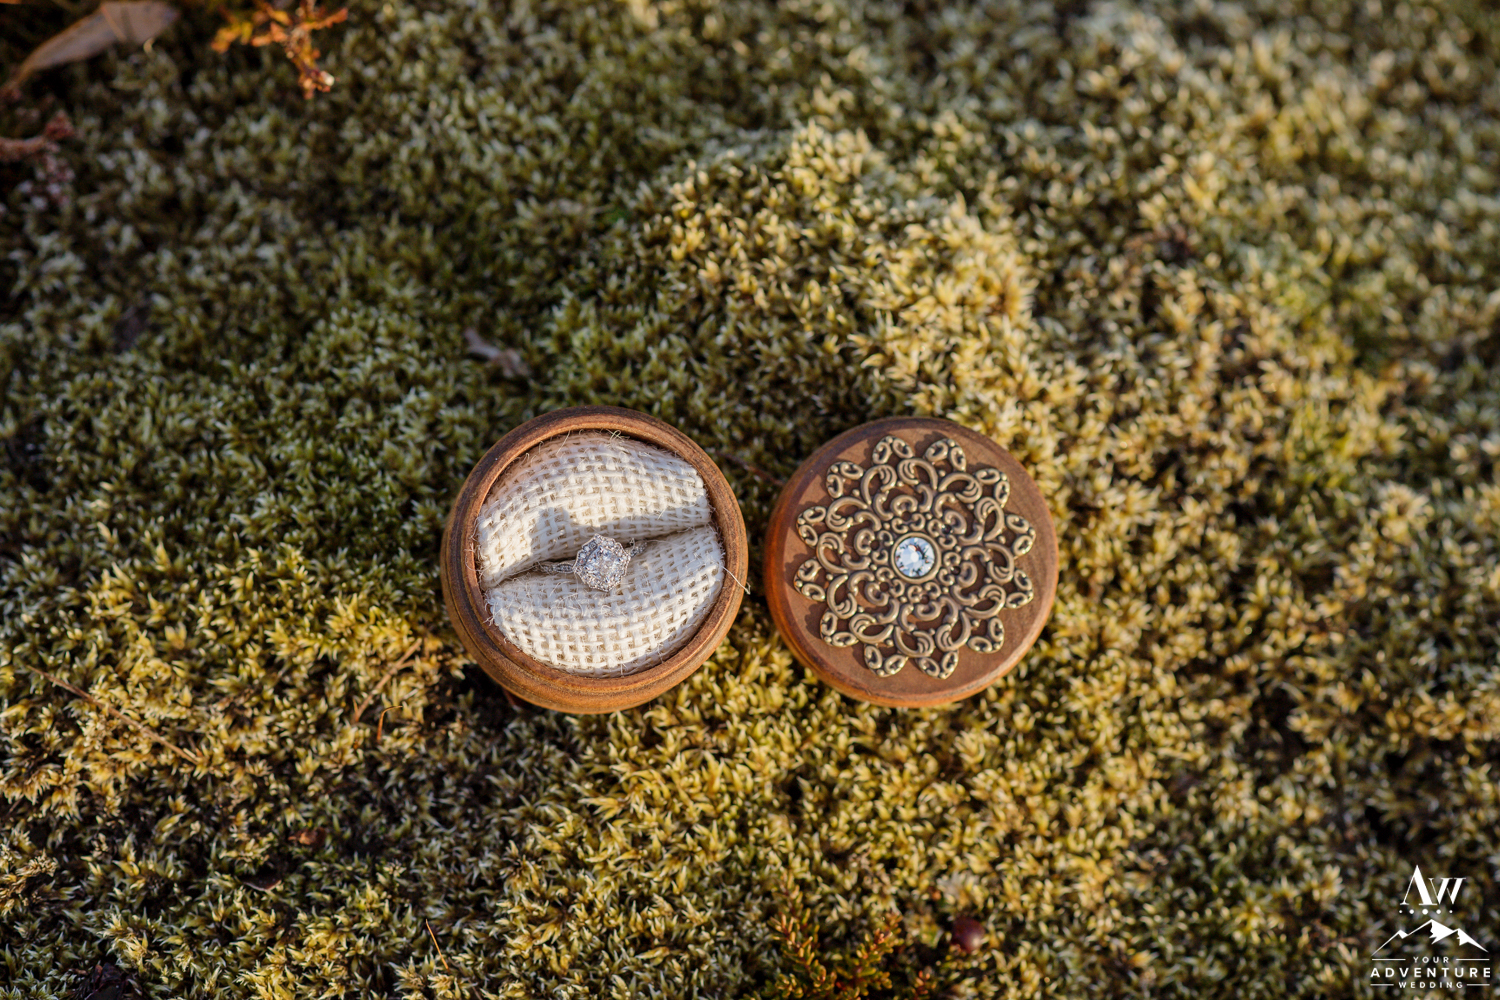 Iceland Engagement Ring Sitting on Moss